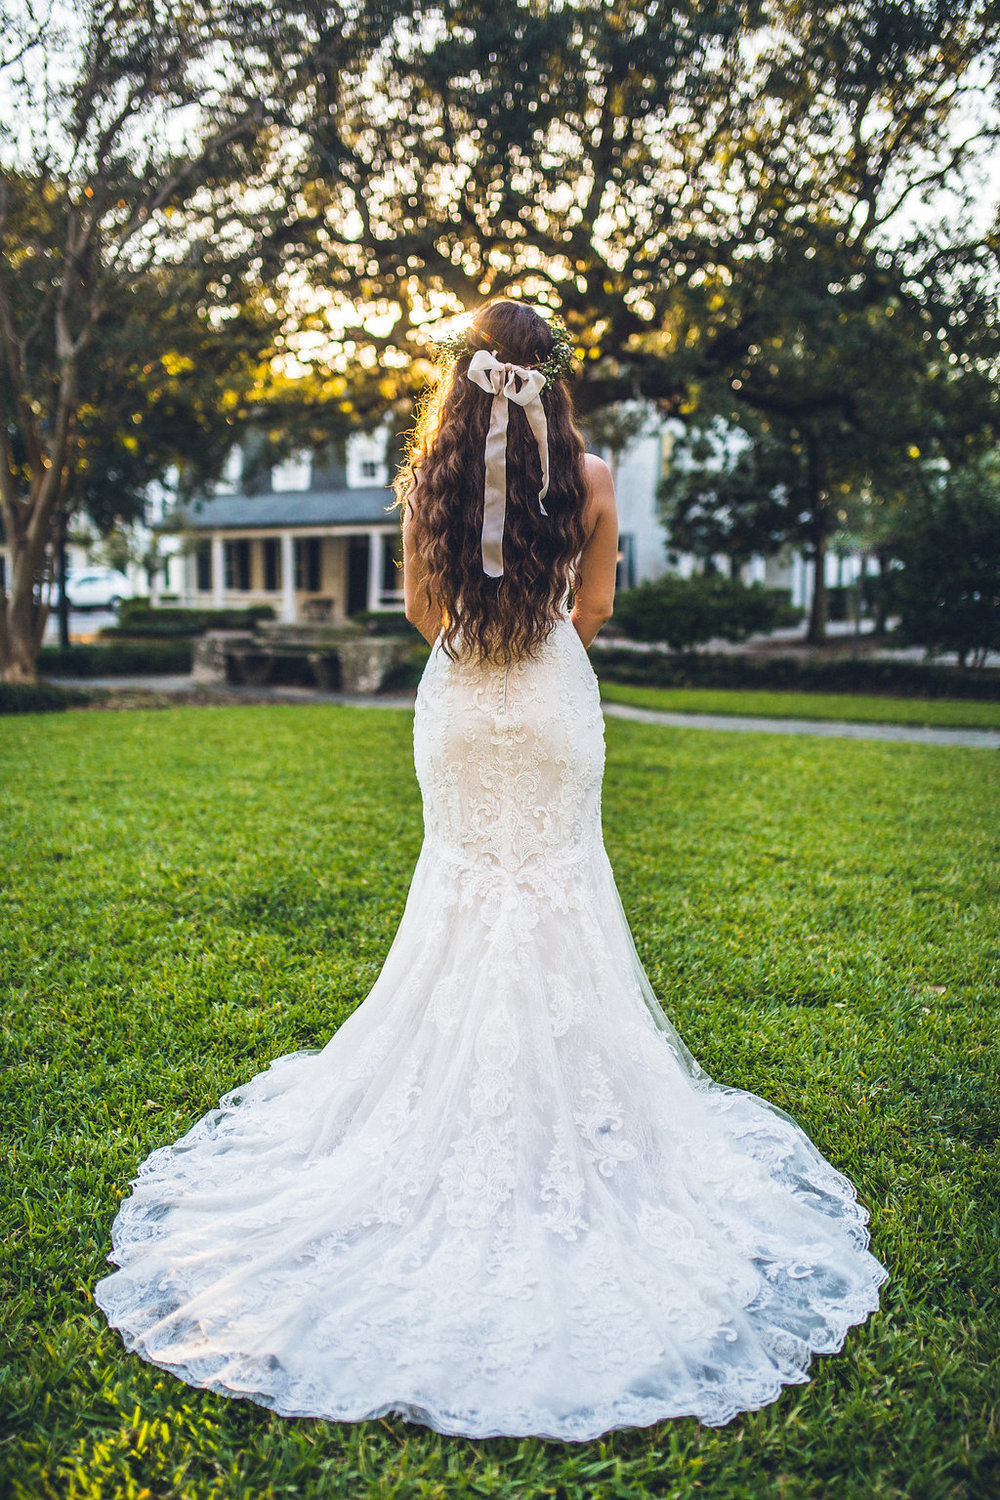 alexis-sweet-photography-ivory-and-beau-bridal-boutique-mirelle--maggie-sottero-rebecca-ingram-lace-mermaid-savannah-wedding-savannah-square-wedding-flower-crown-boho-bride-savannah-wedding-planner-savannah-bridal-boutique-savannah-florist-9.jpg